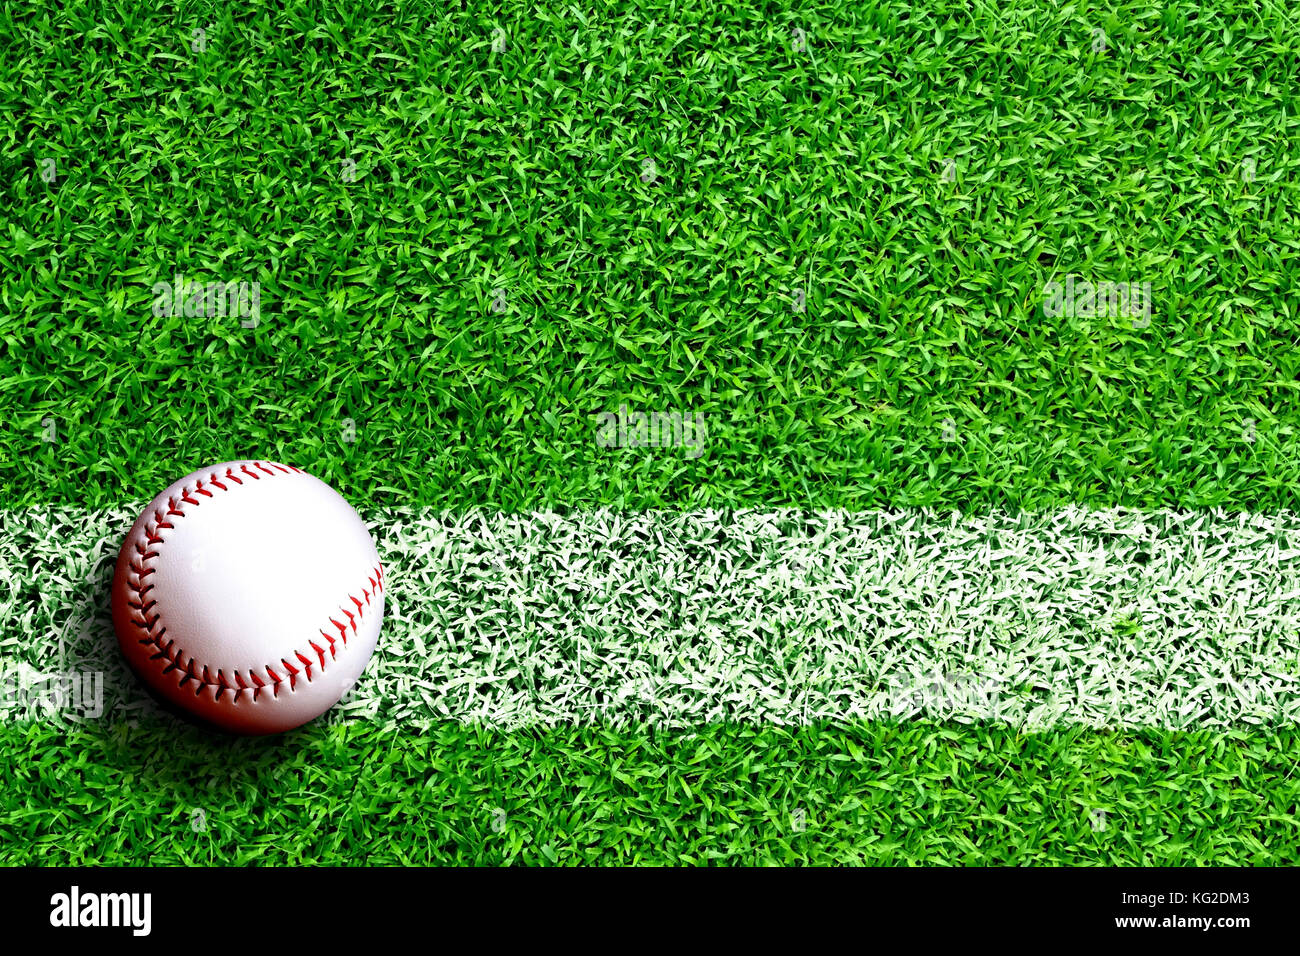 Baseball on field with white line marking and copy space. Line represents infield line or foul line. - Stock Image